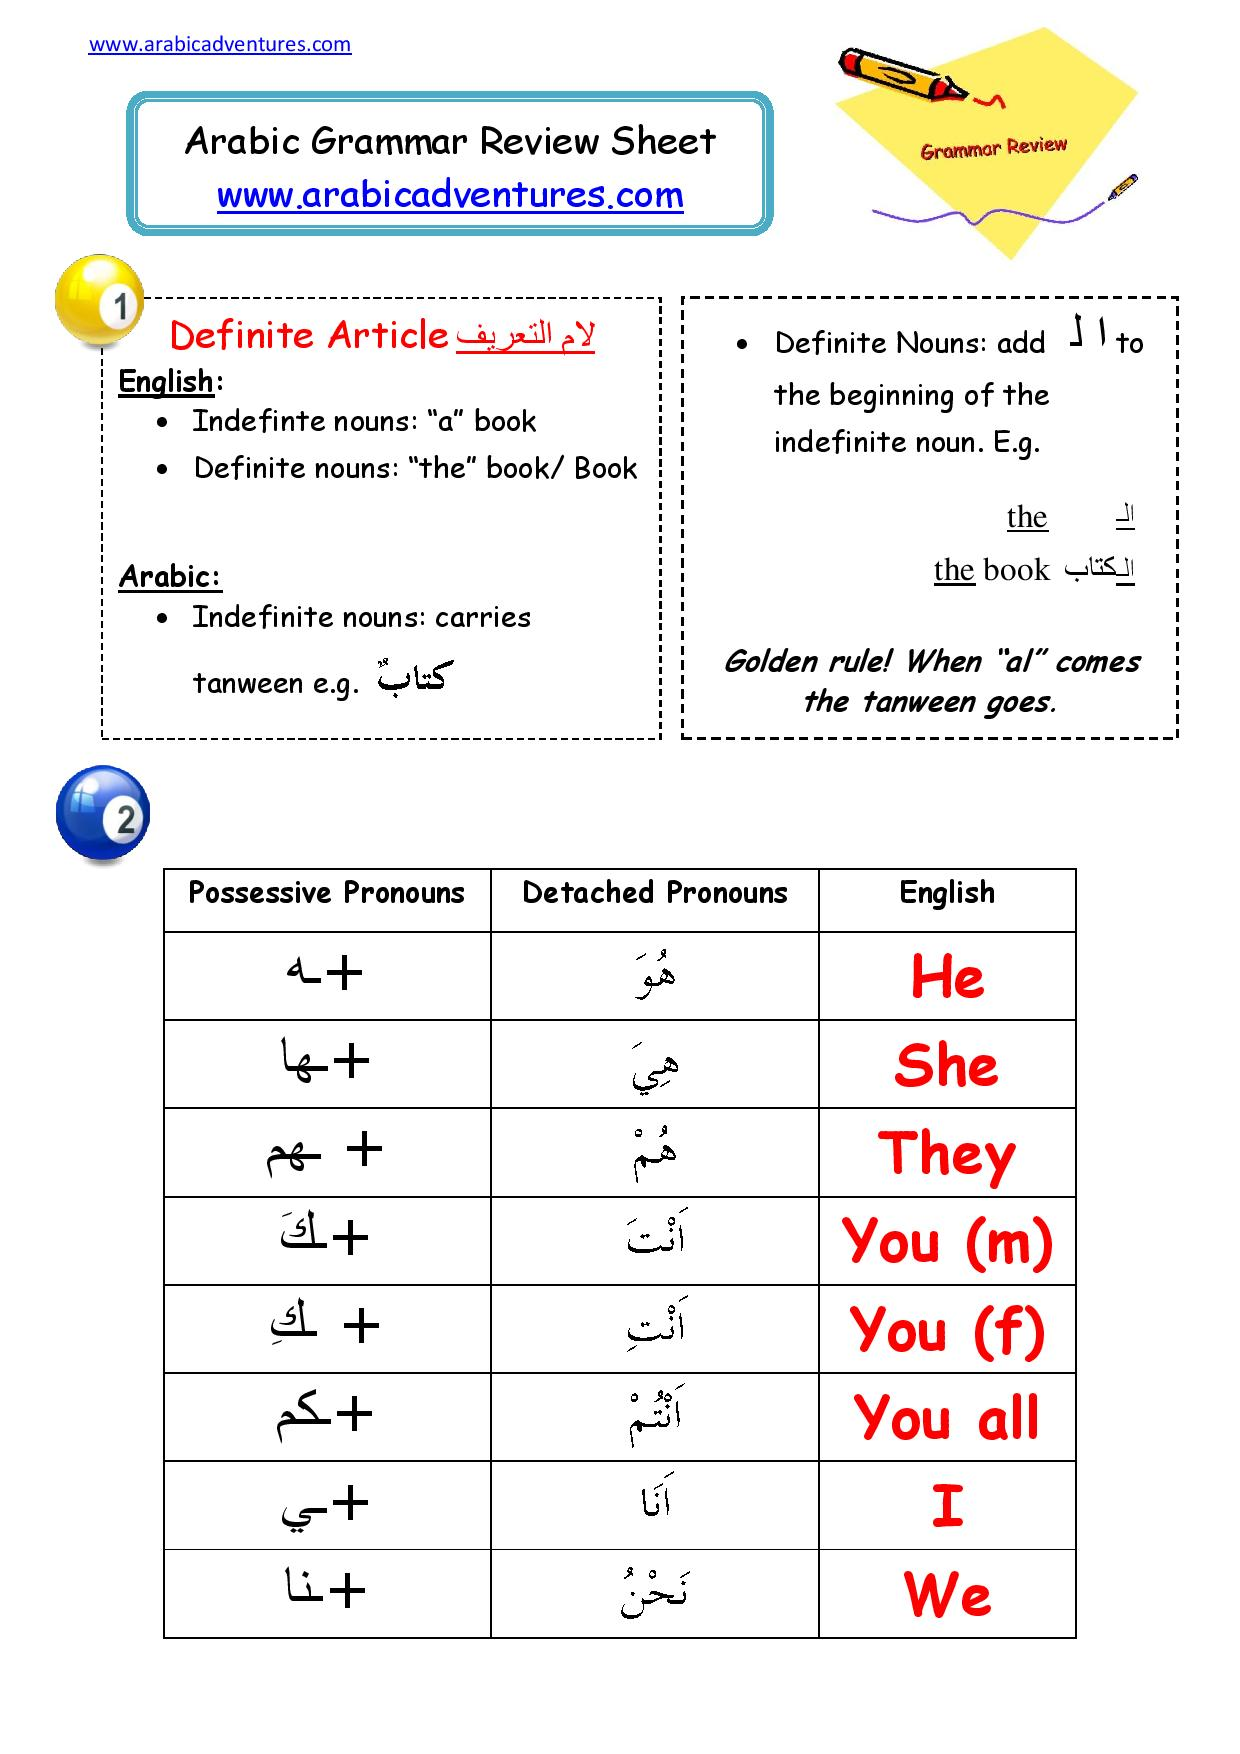 worksheet Grammar Review Worksheets arabic grammar review sheet adventures worksheet page 001